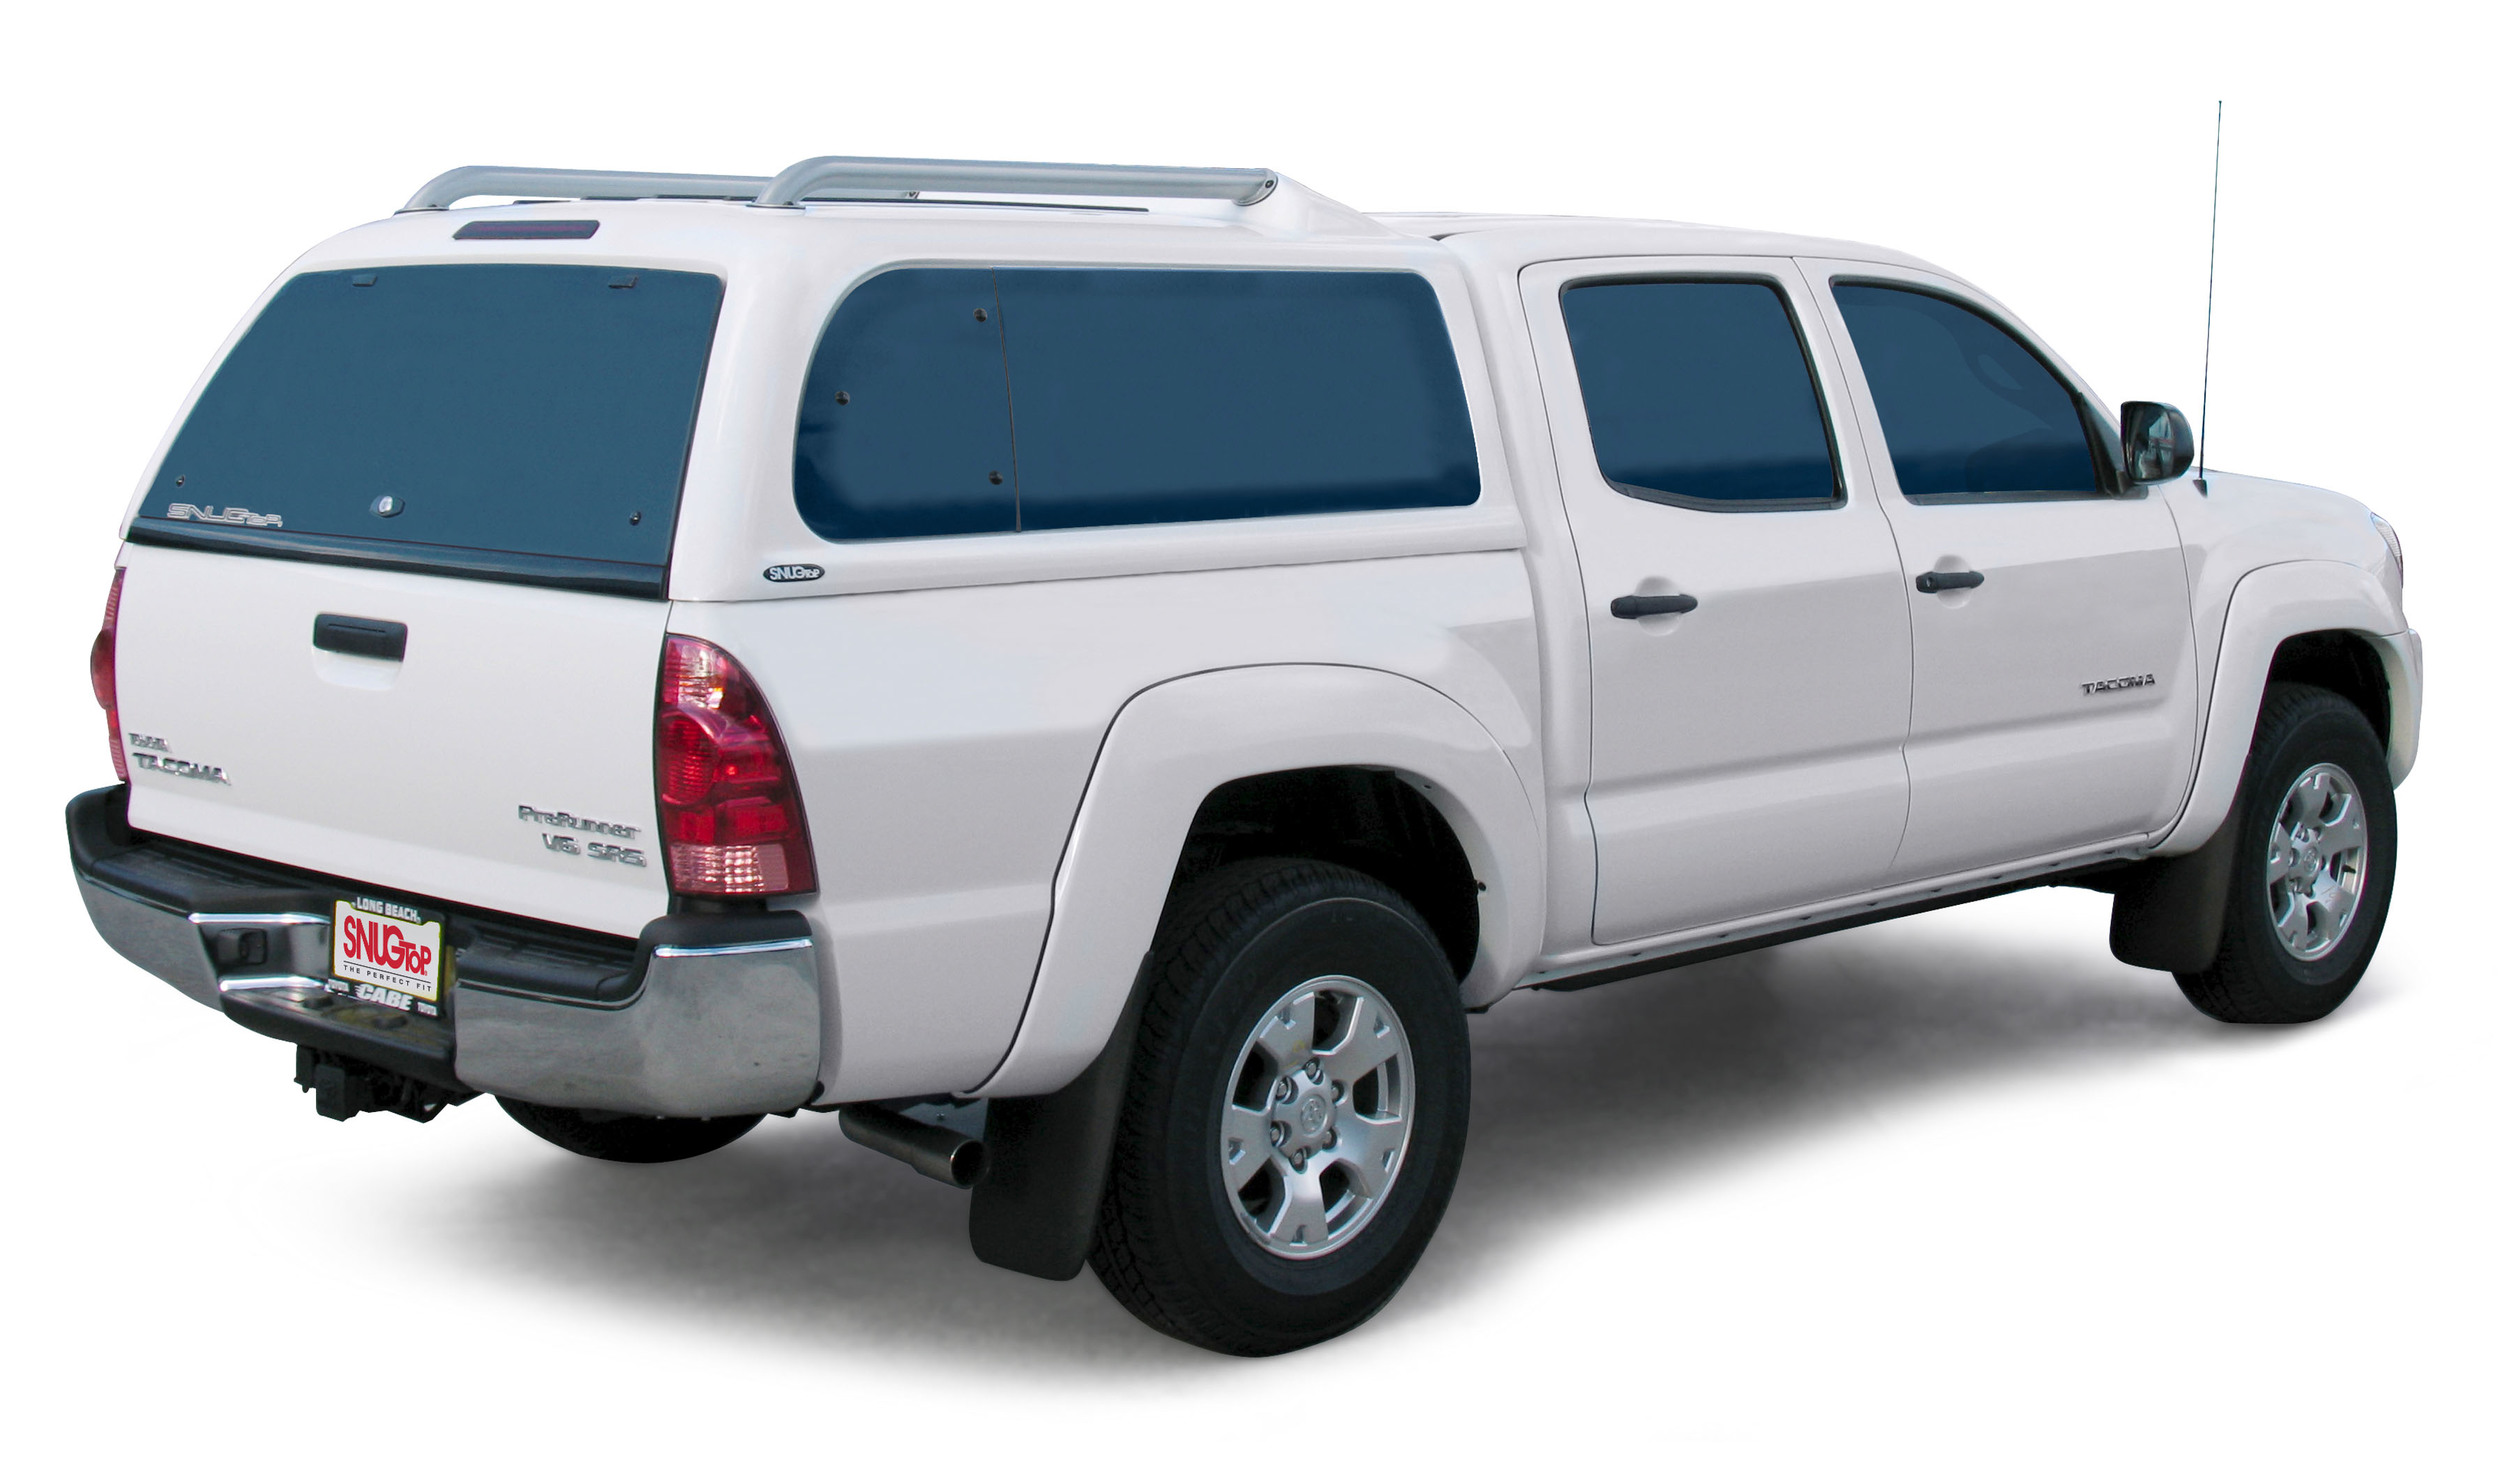 2006_tacoma_dc v_bed with xtr web res.jpg